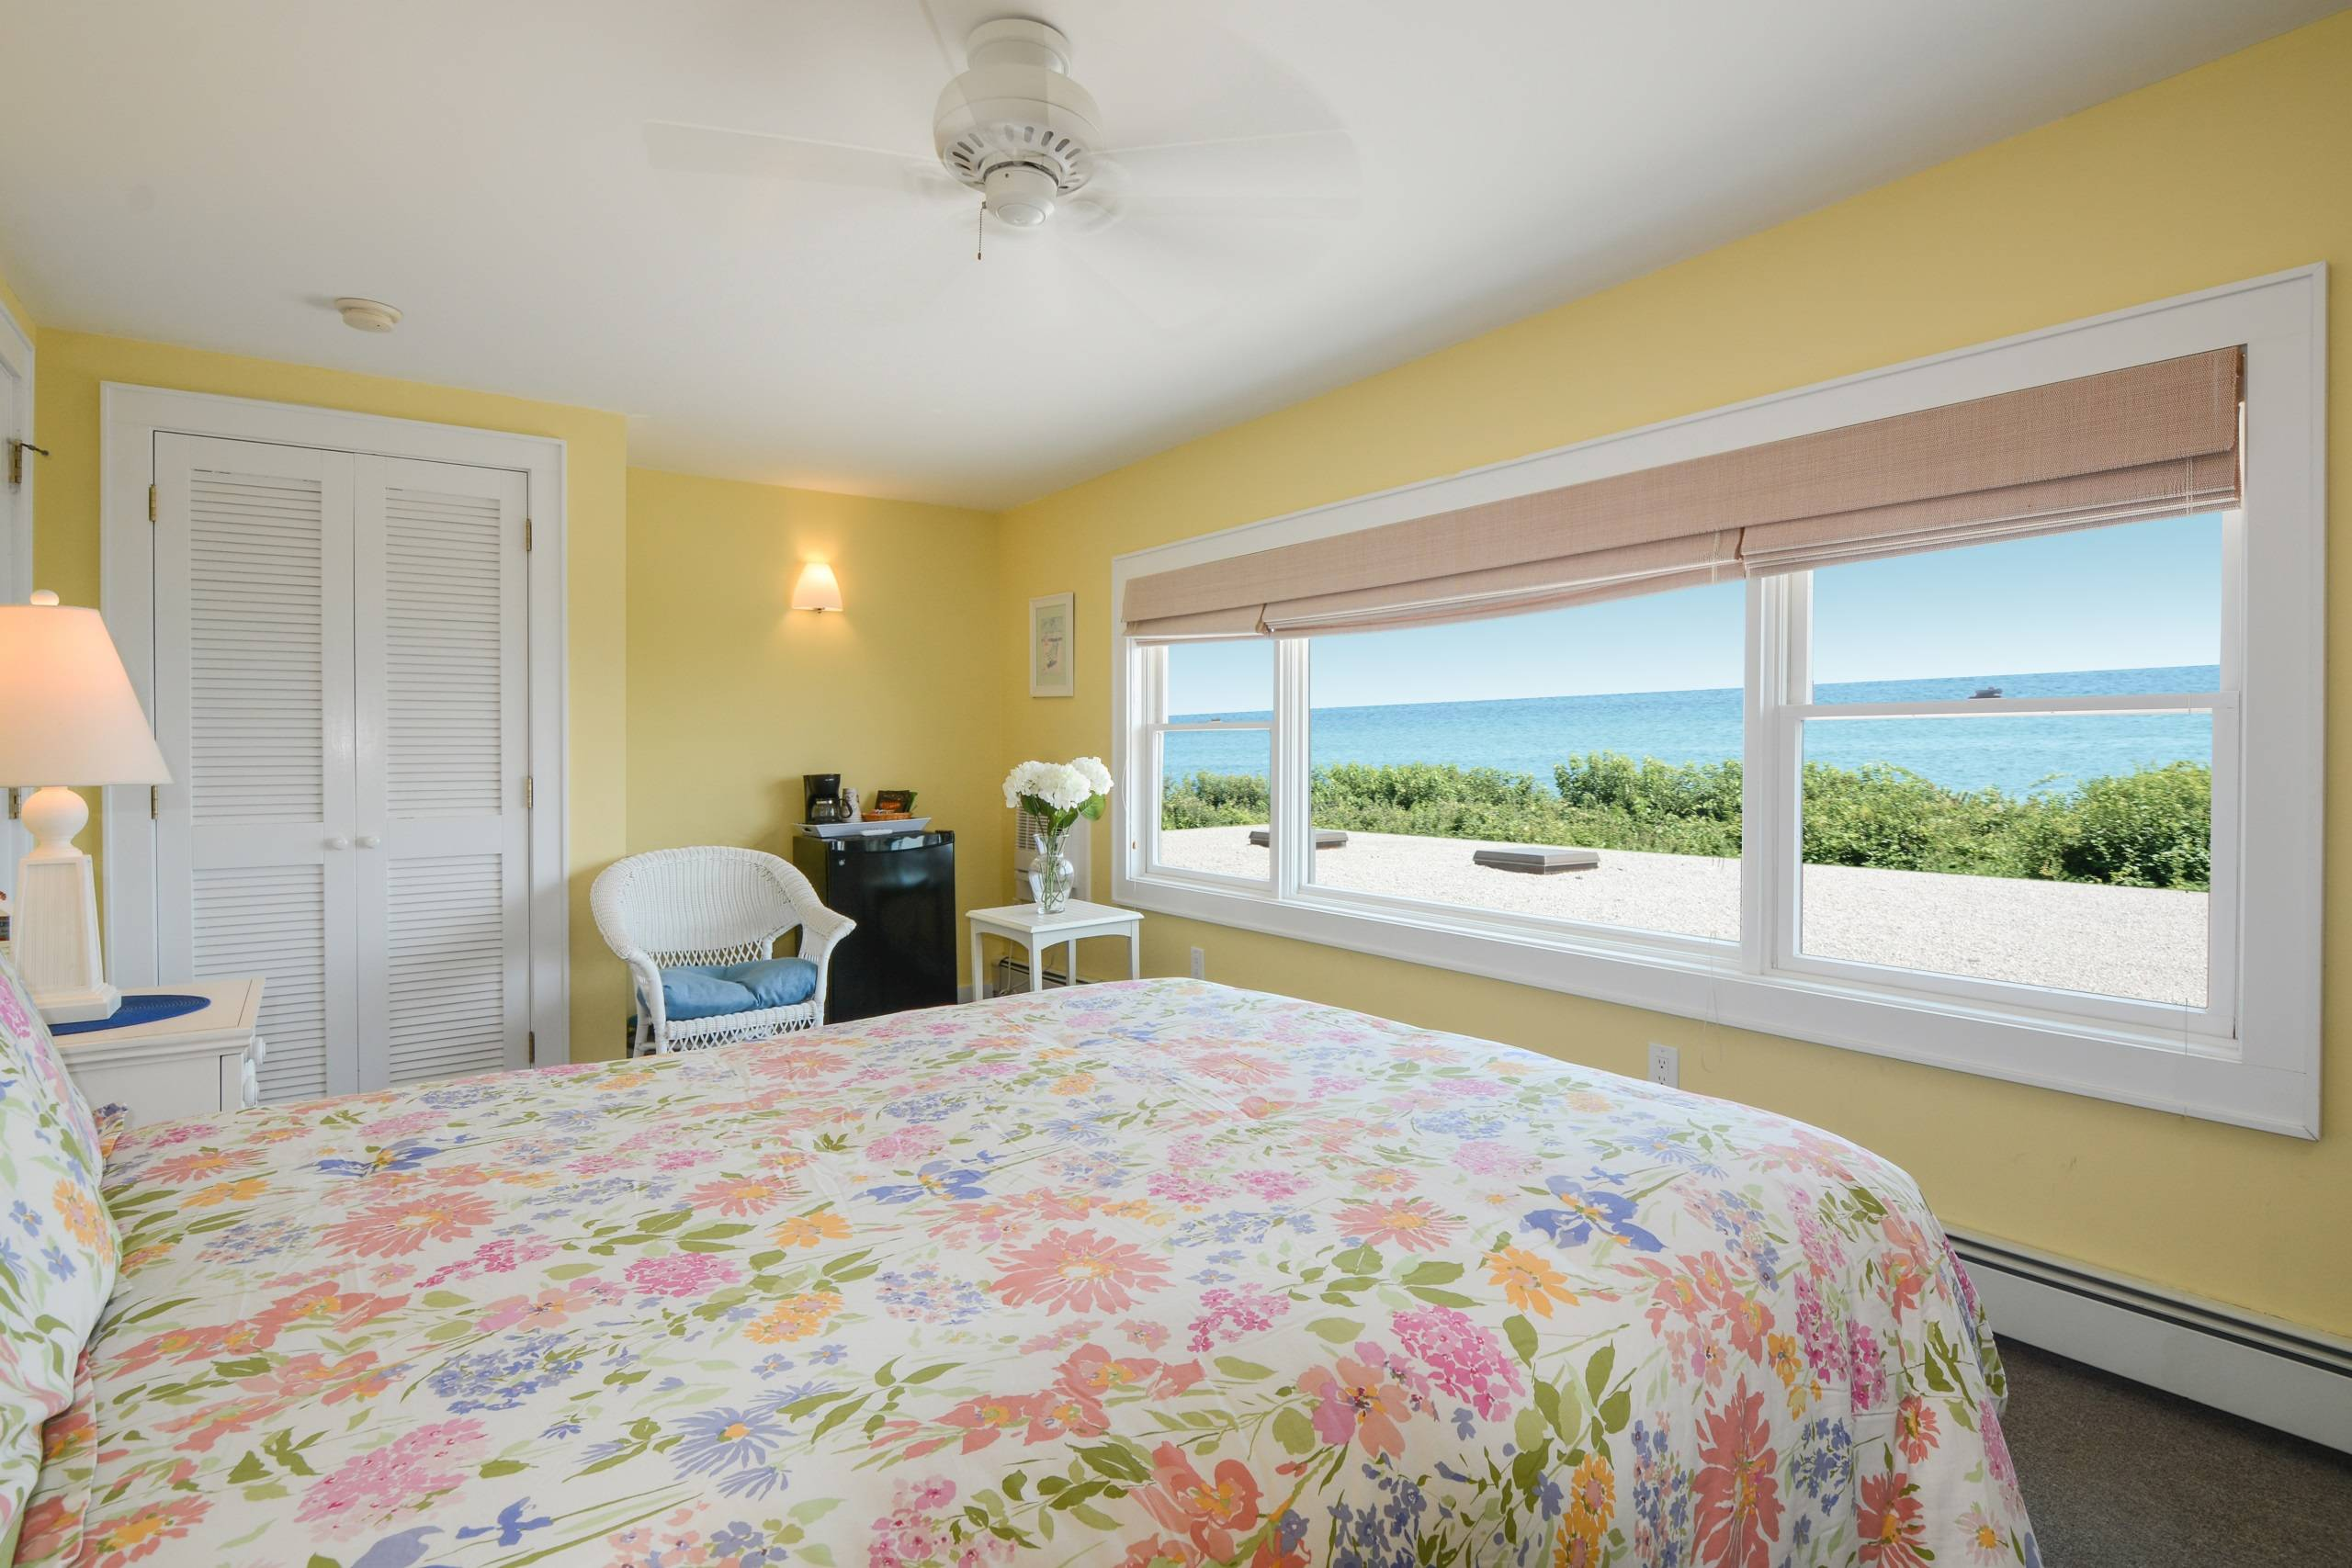 Surfside Inn - Rooms